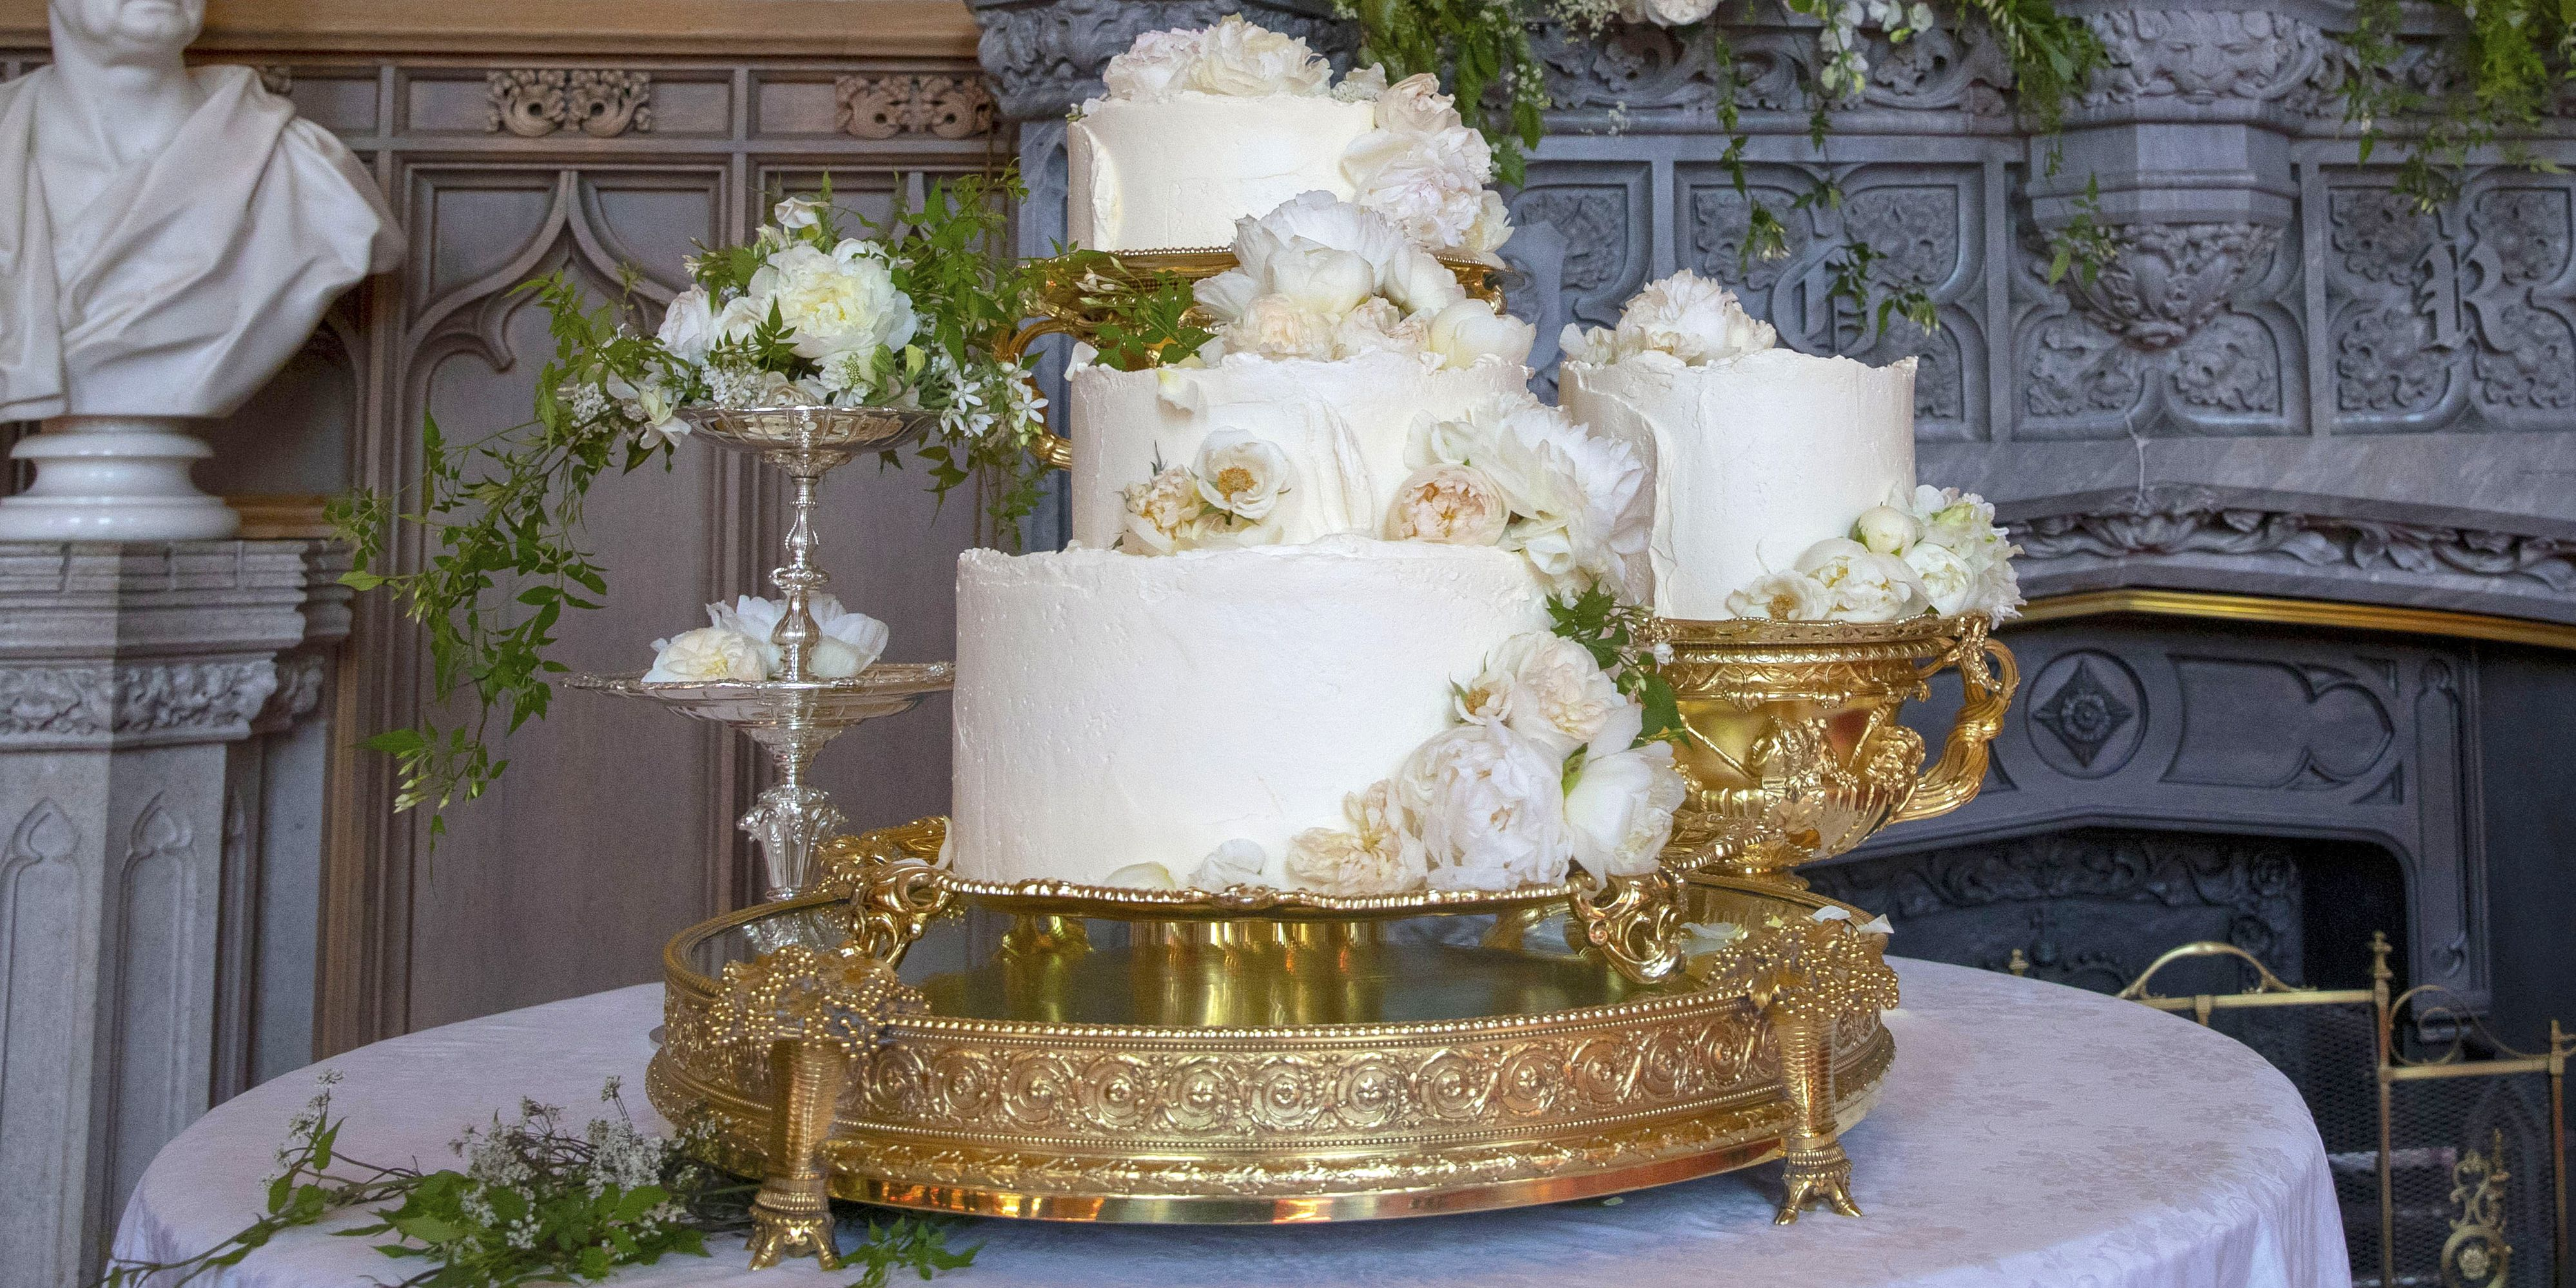 prince harry and meghan markle wedding cake who is making the cake for the royal wedding meghan markle wedding cake